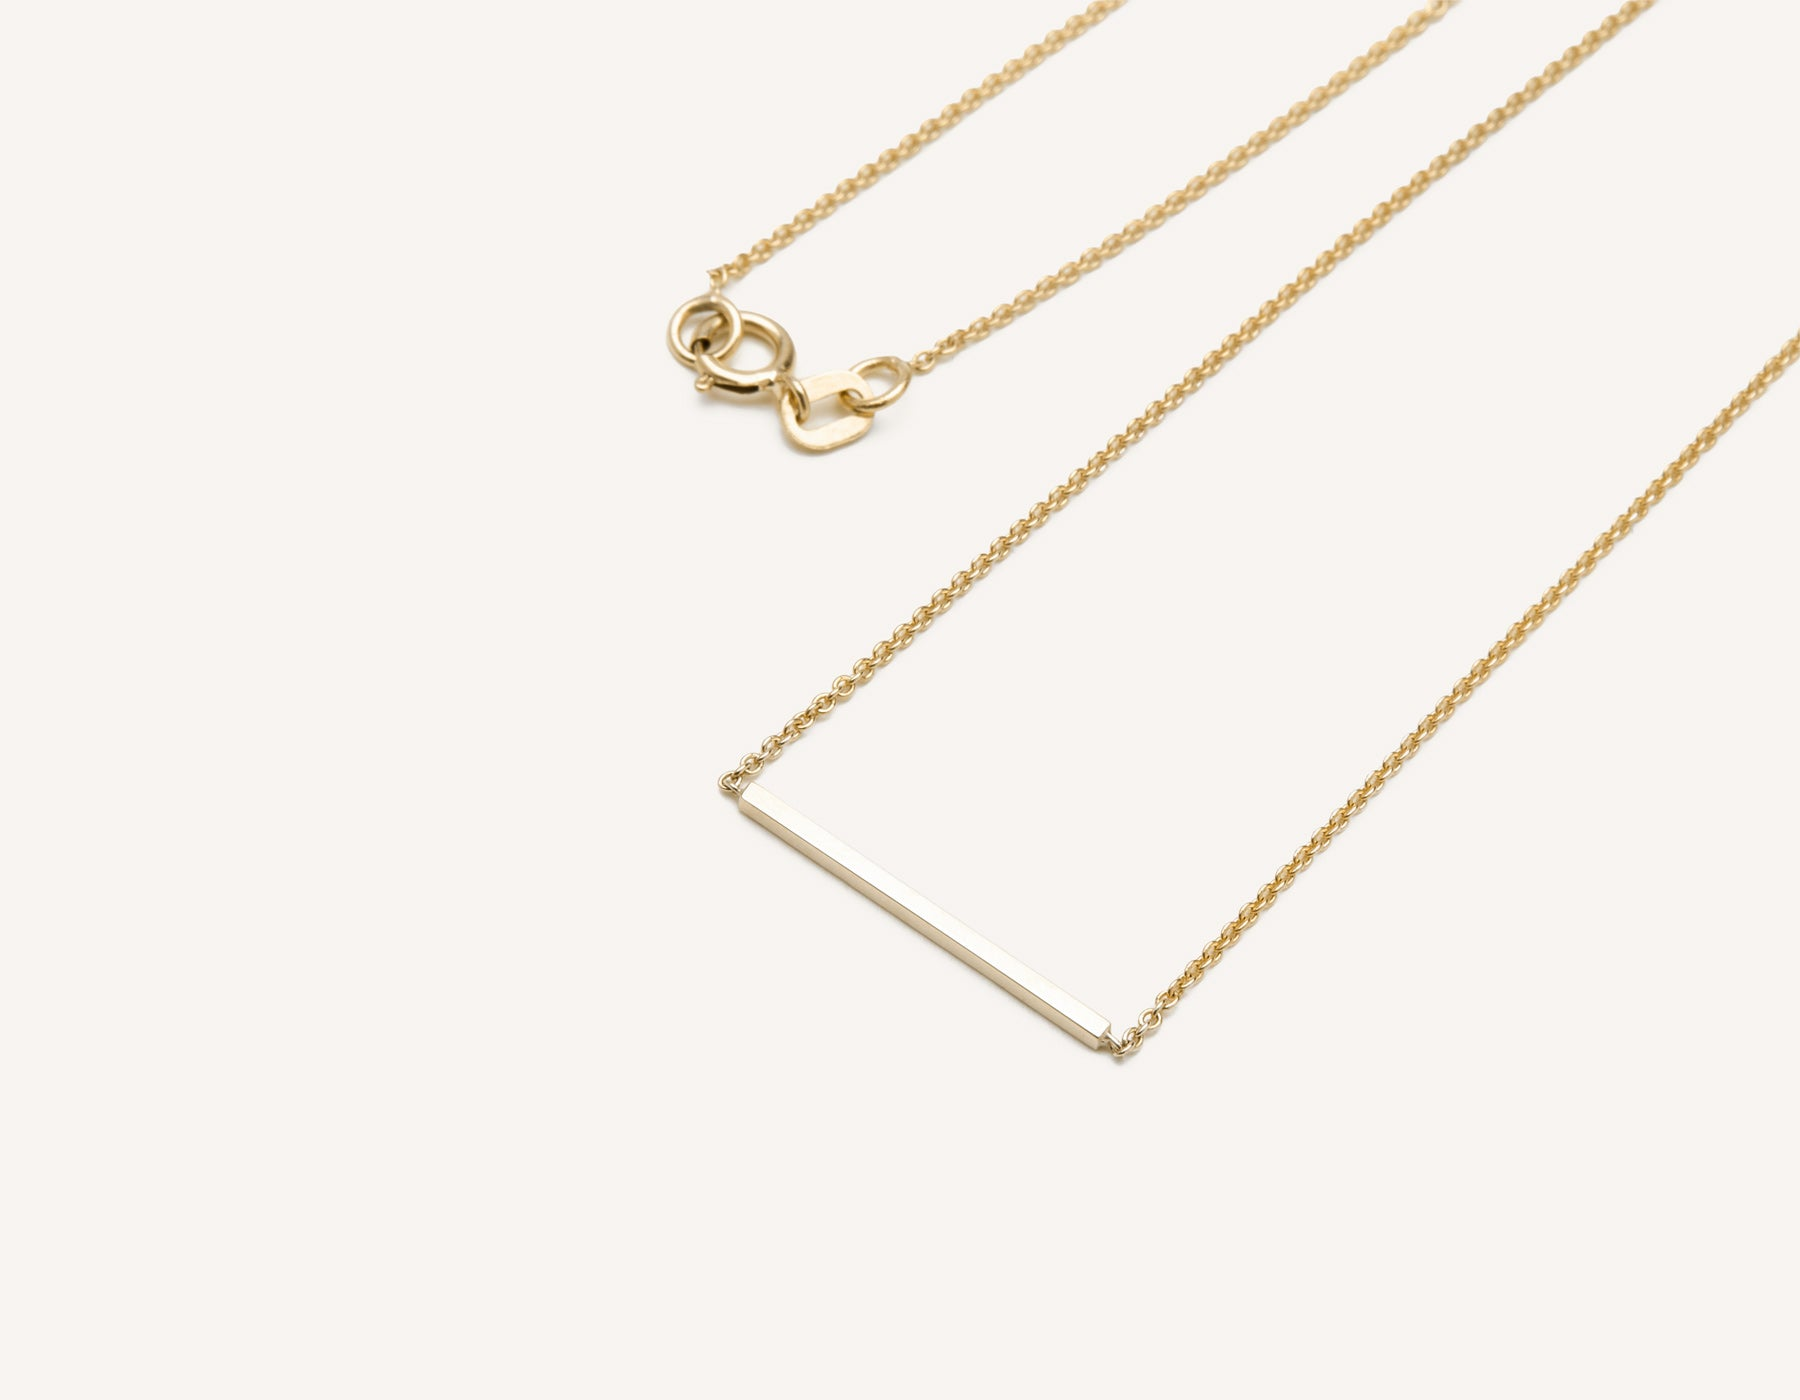 Line Necklace 14k solid gold small bar delicate chain spring ring clasp Vrai & Oro, 14K Yellow Gold